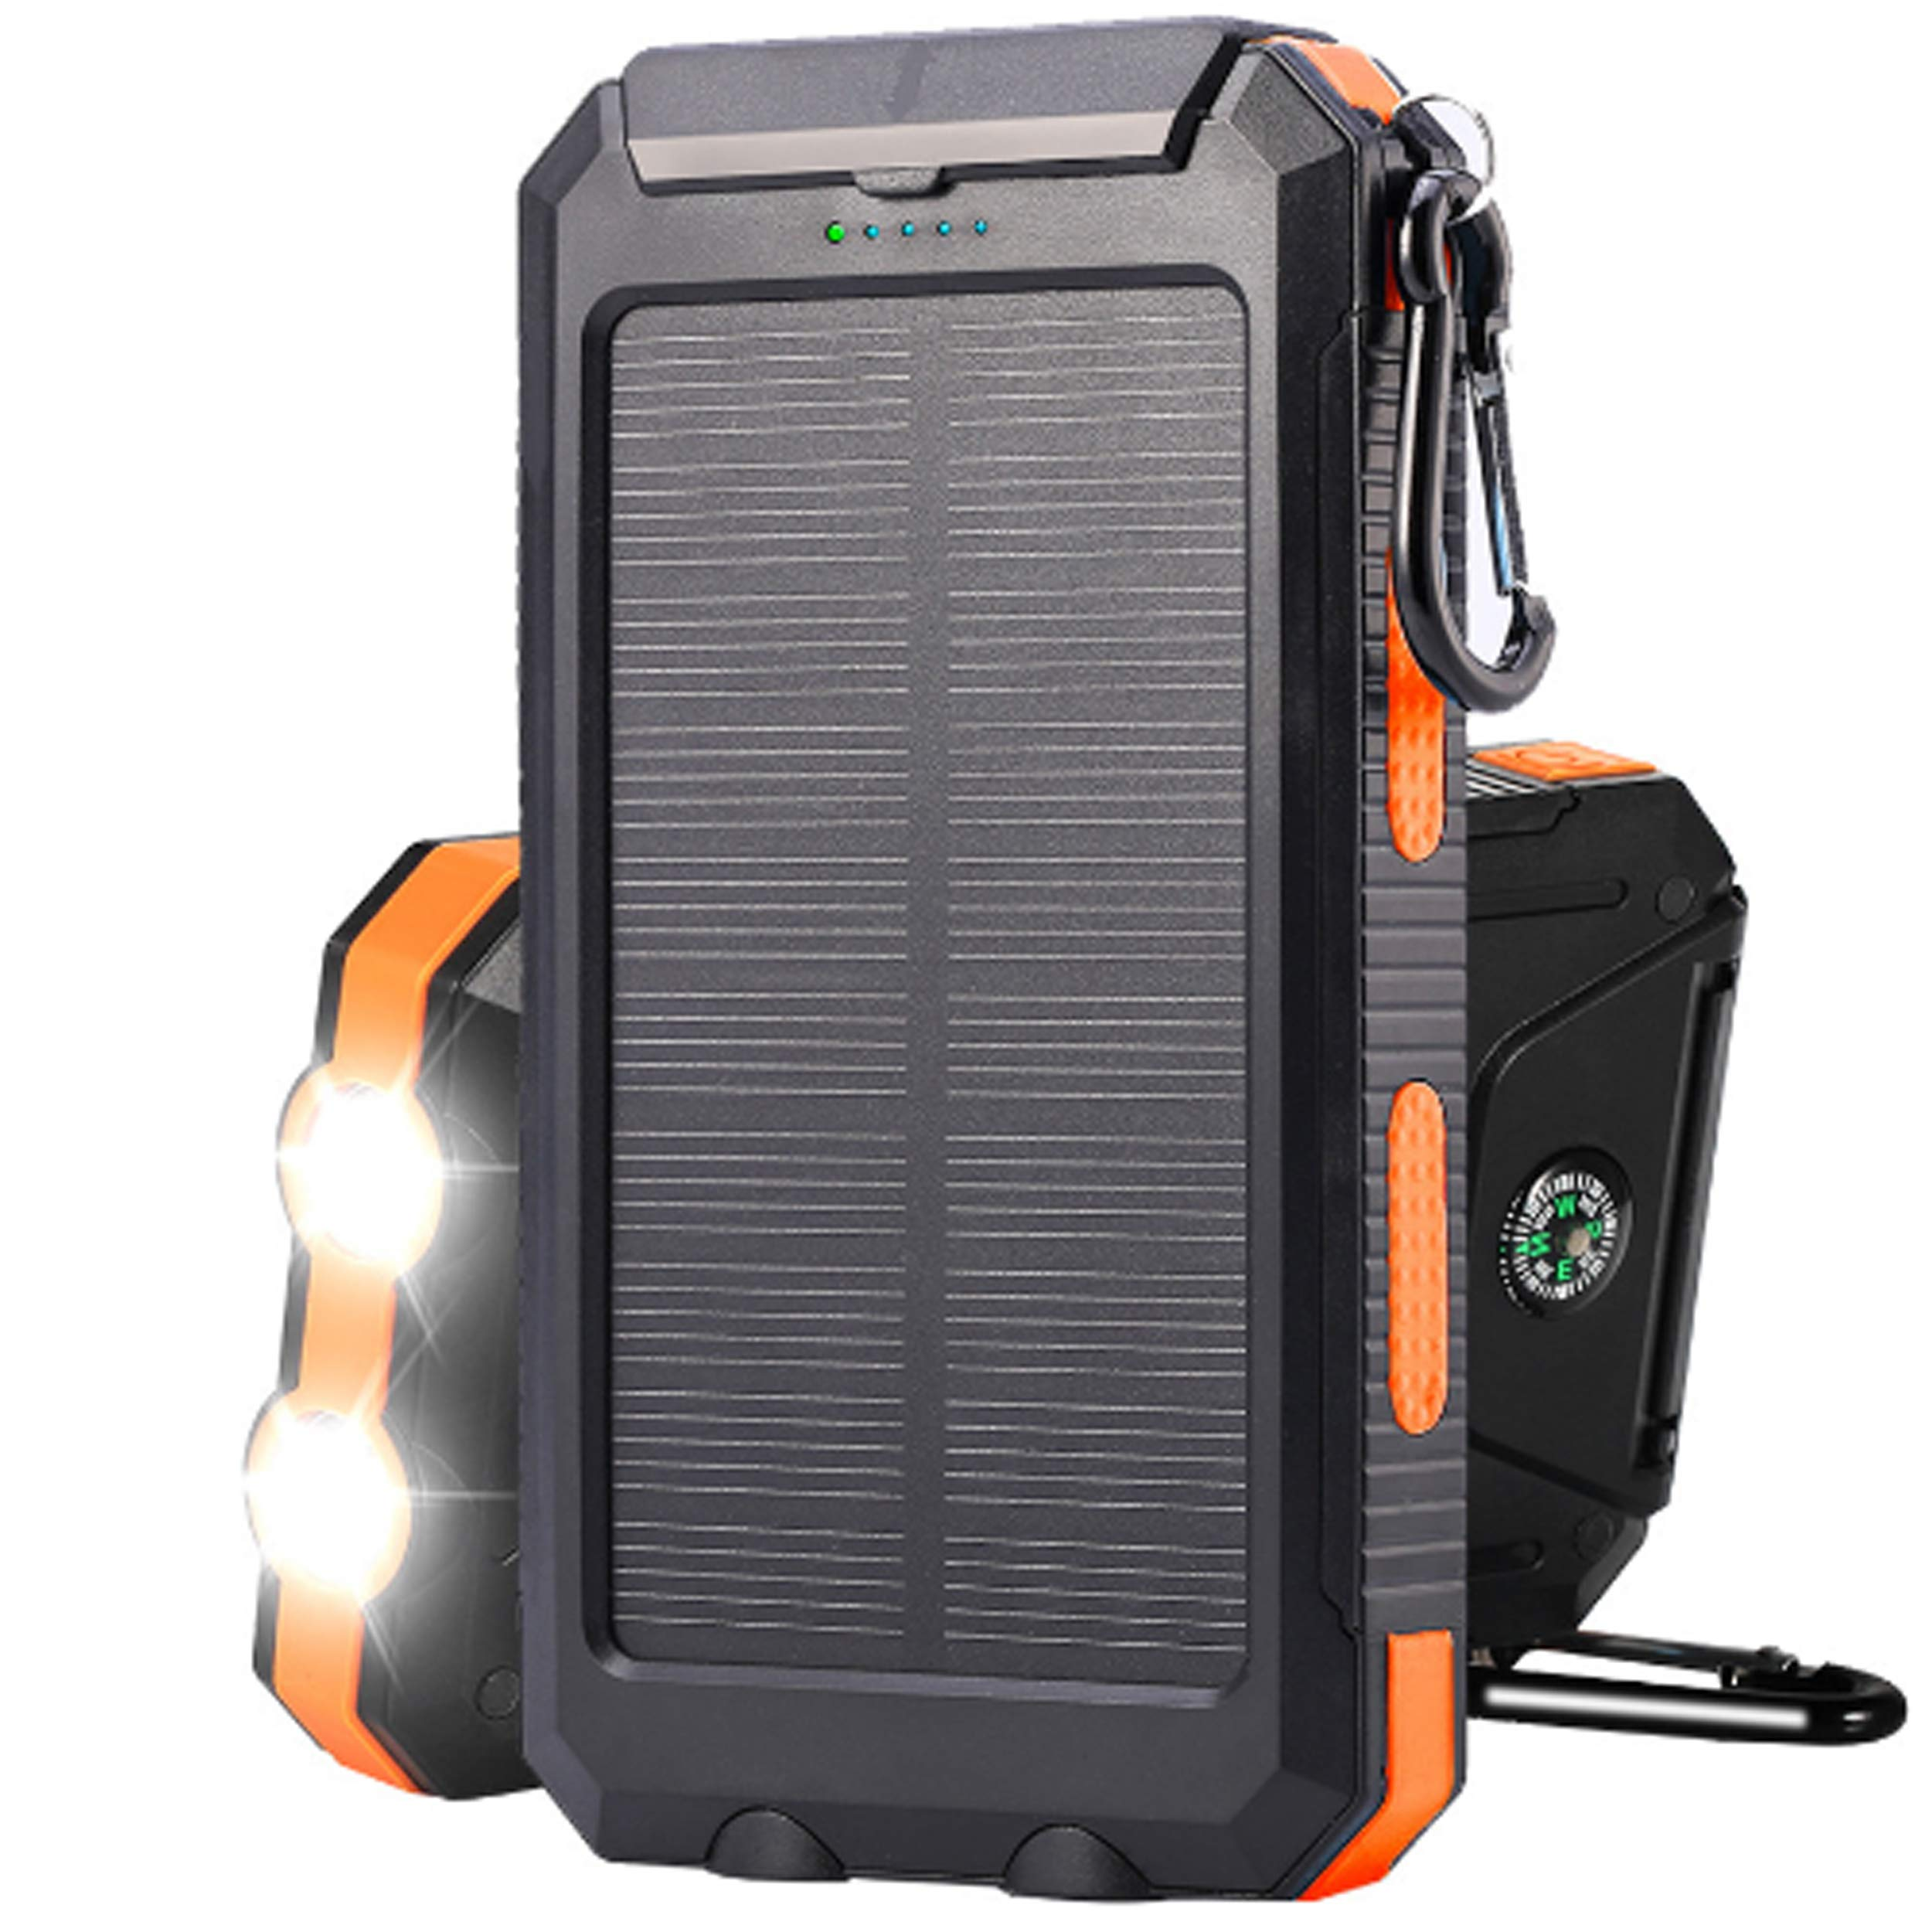 Bysionics Solar Phone Charger,Portable Charger Solar Charger Power Bank 12000mah External Backup Battery Pack Dual USB with 2LED Light Carabiner and Compass for Your Smartphones and More (Orange)